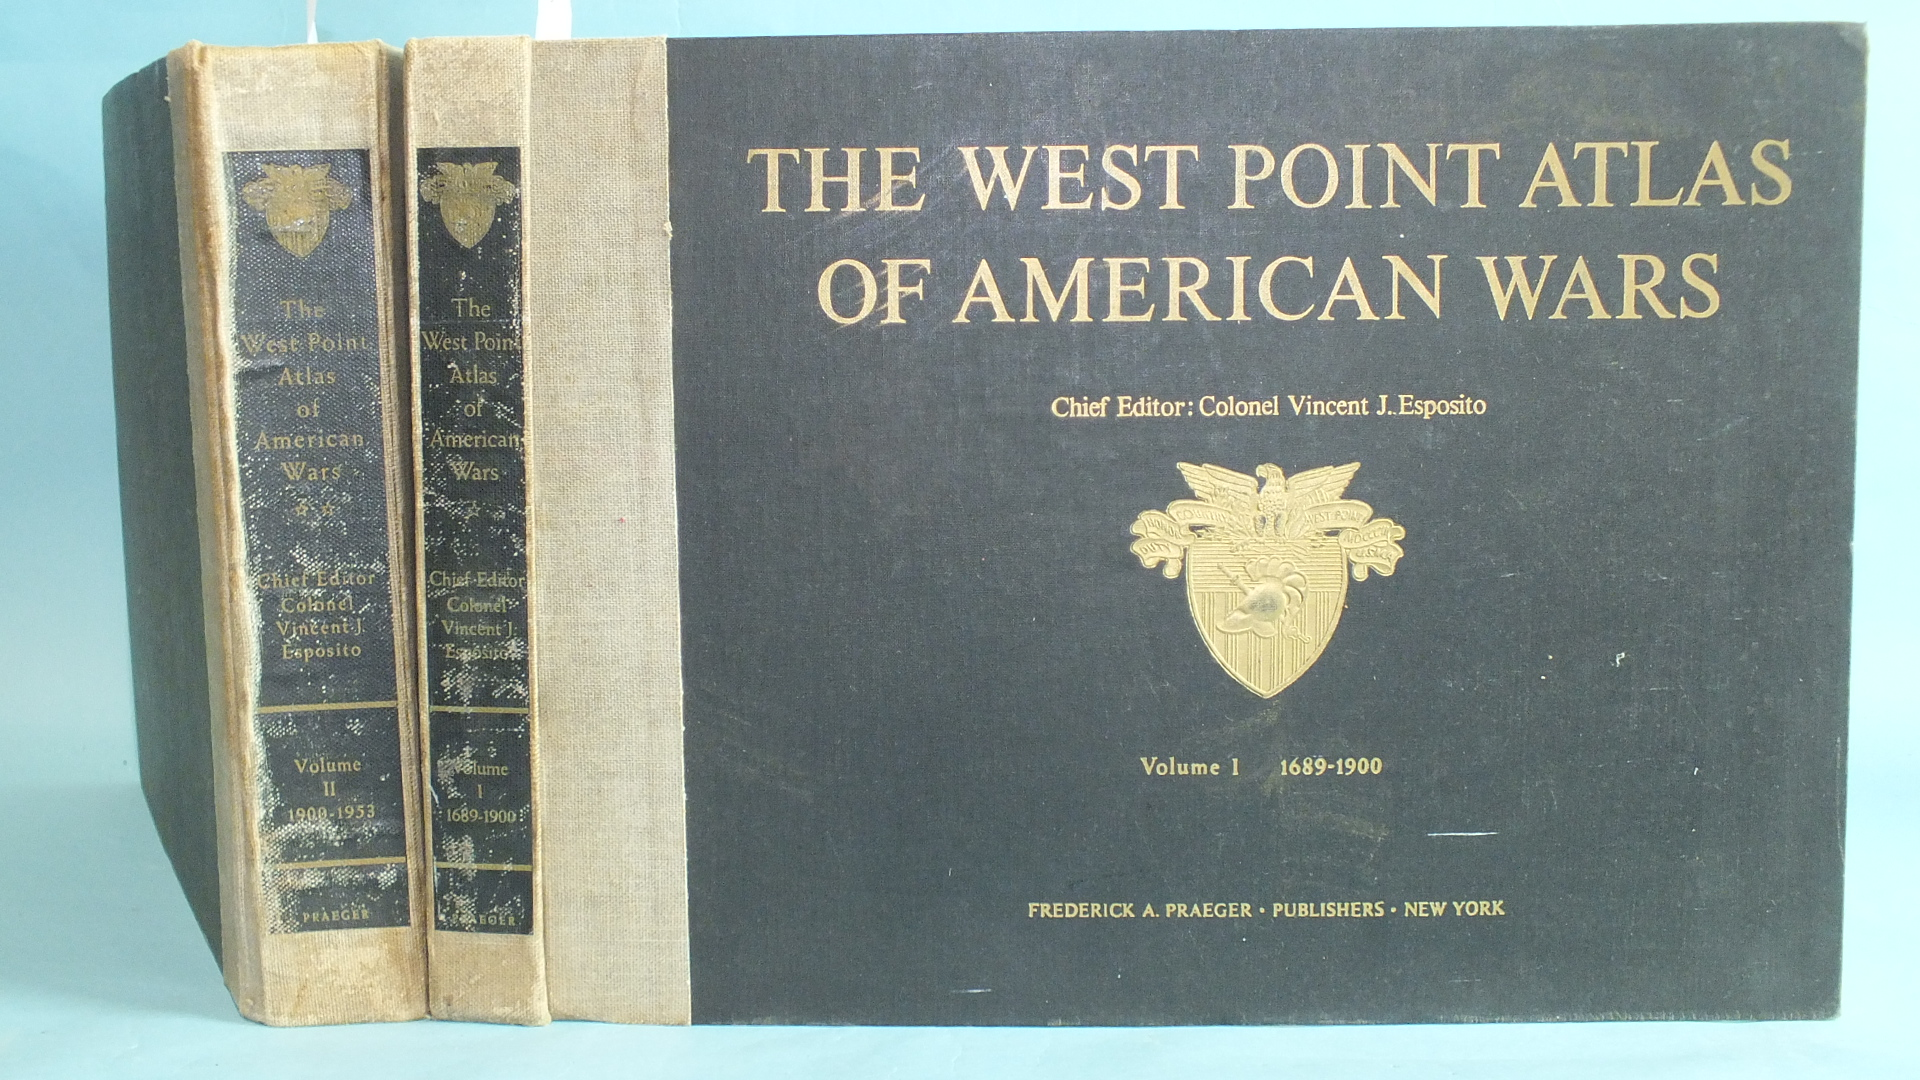 Esposito (Col. Vincent J) (Ed.), The West Point Atlas of American Wars, 2 vols, plts, cl gt, ob 4to,